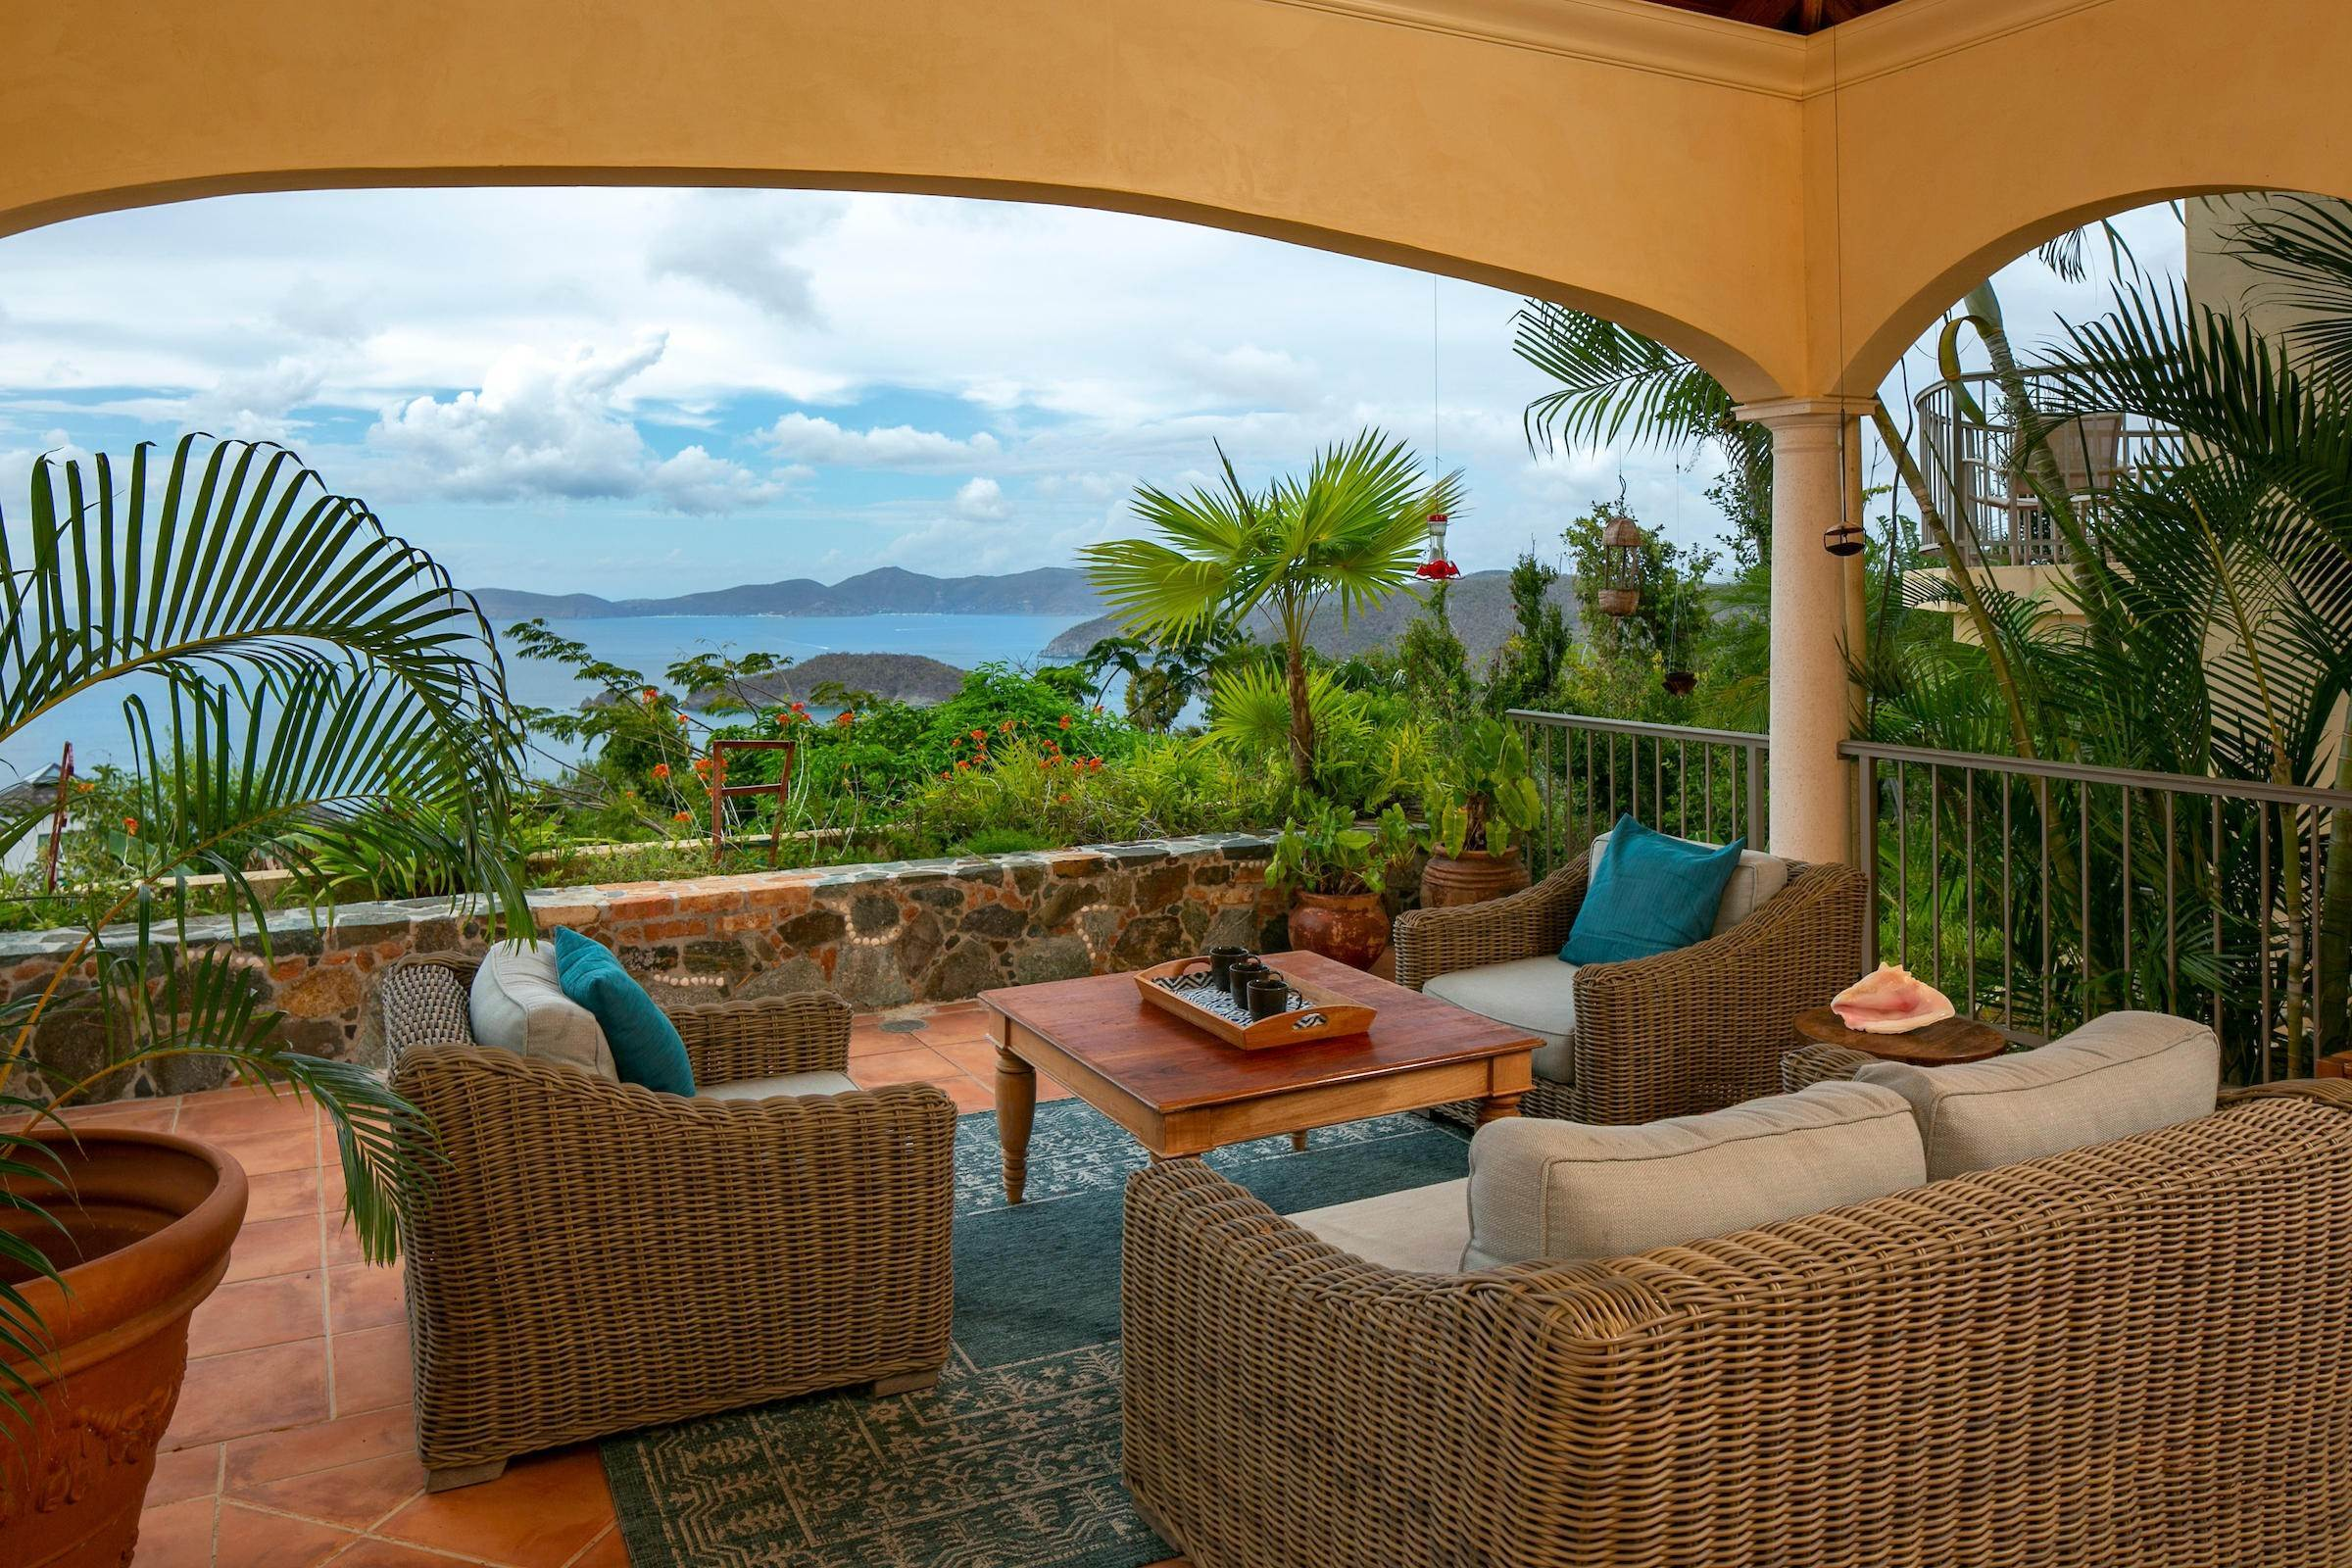 Single Family Home pour l à vendre à 3-16A Catherineberg Cruz Bay St John, Virgin Islands,00830 Isles Vierges Américaines